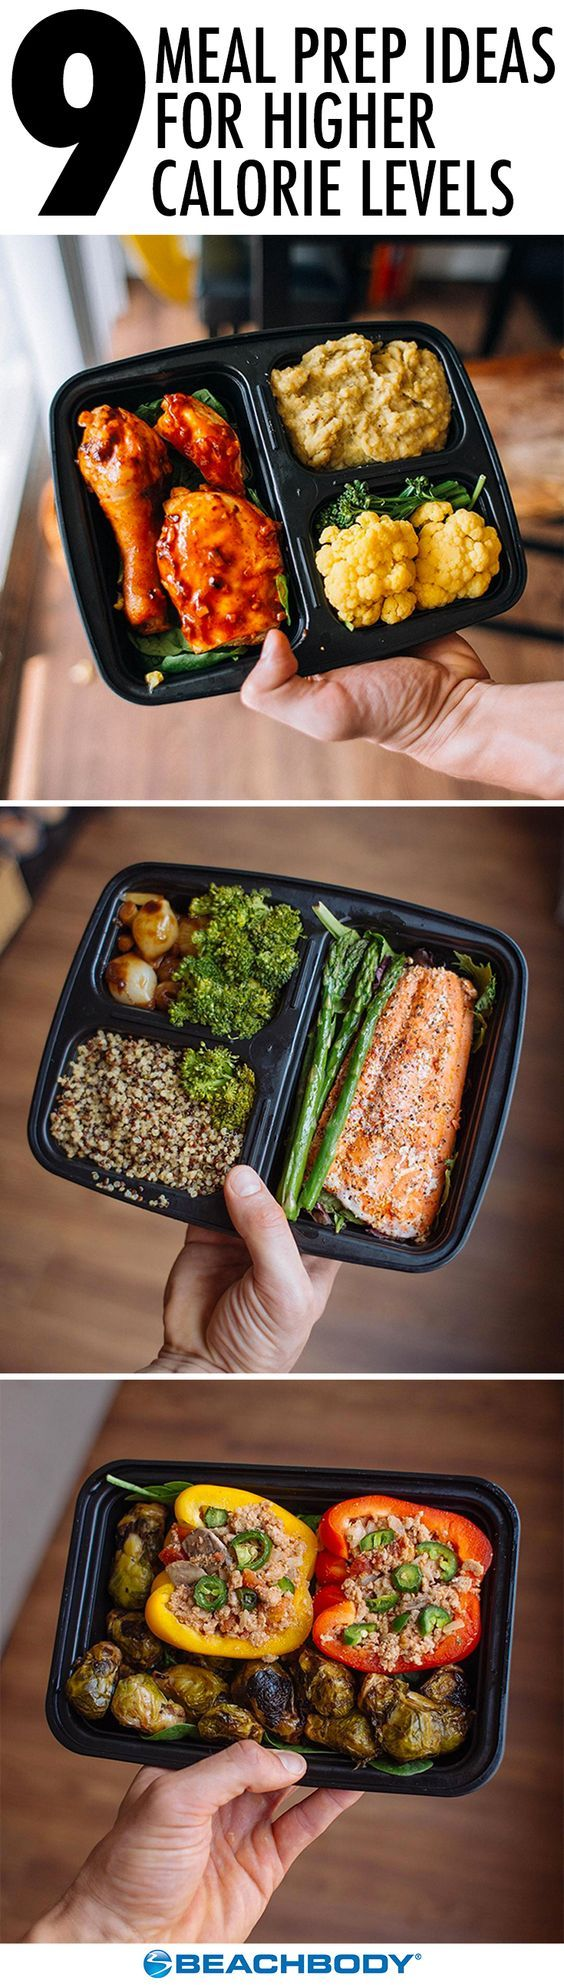 When you're trying to pack on muscle, you have to fuel your body with lots of high-quality food. Meal prepping can help you hit your calorie requirements with healthy food that's also delicious. Here are nine tasty meals for you to try! // meal